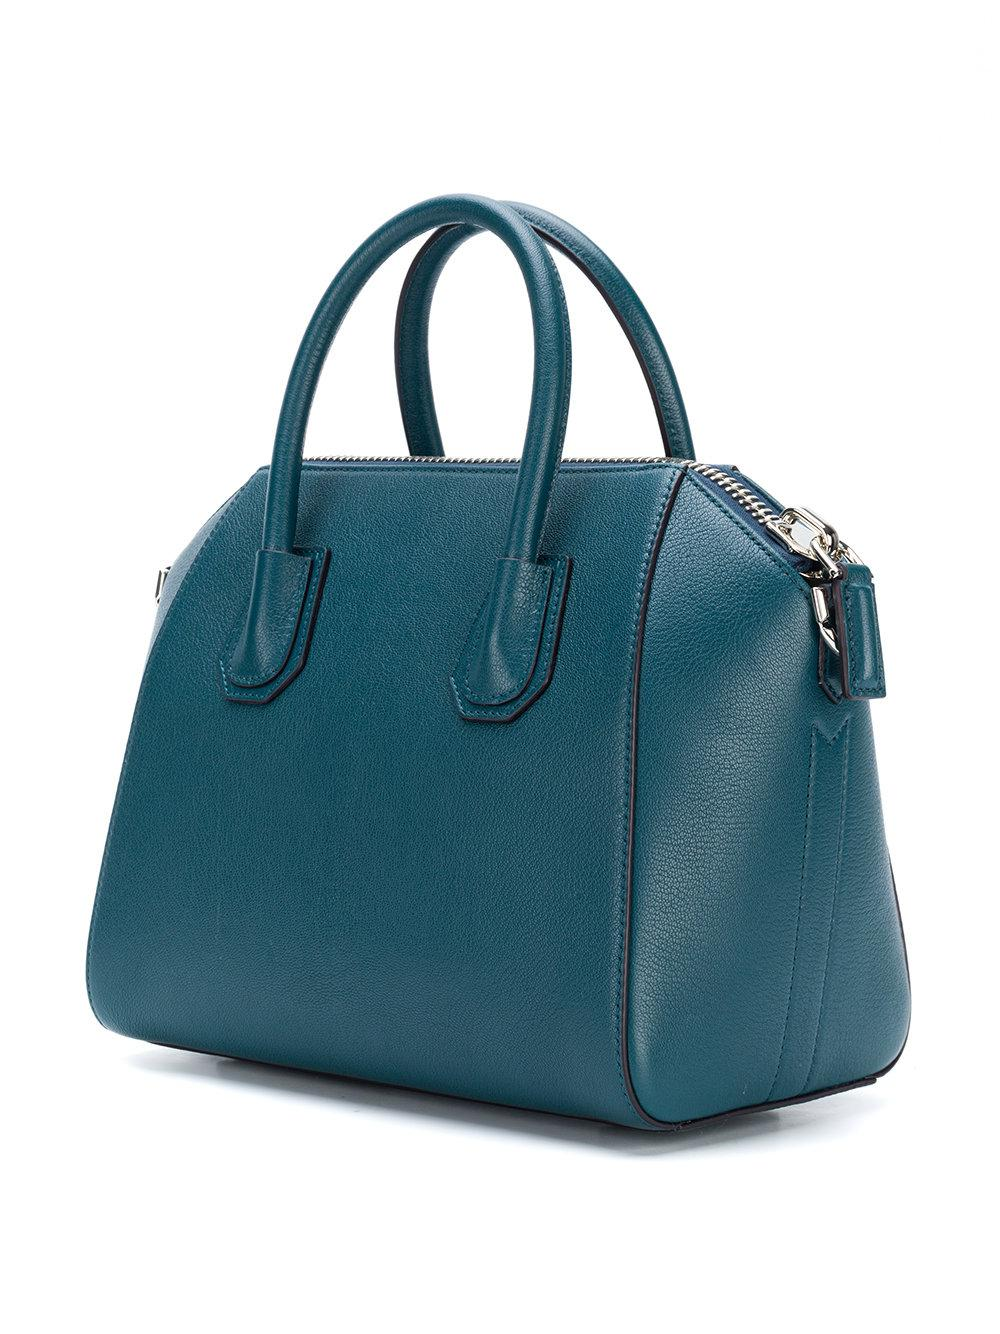 Givenchy Leather Antigona Tote in Blue